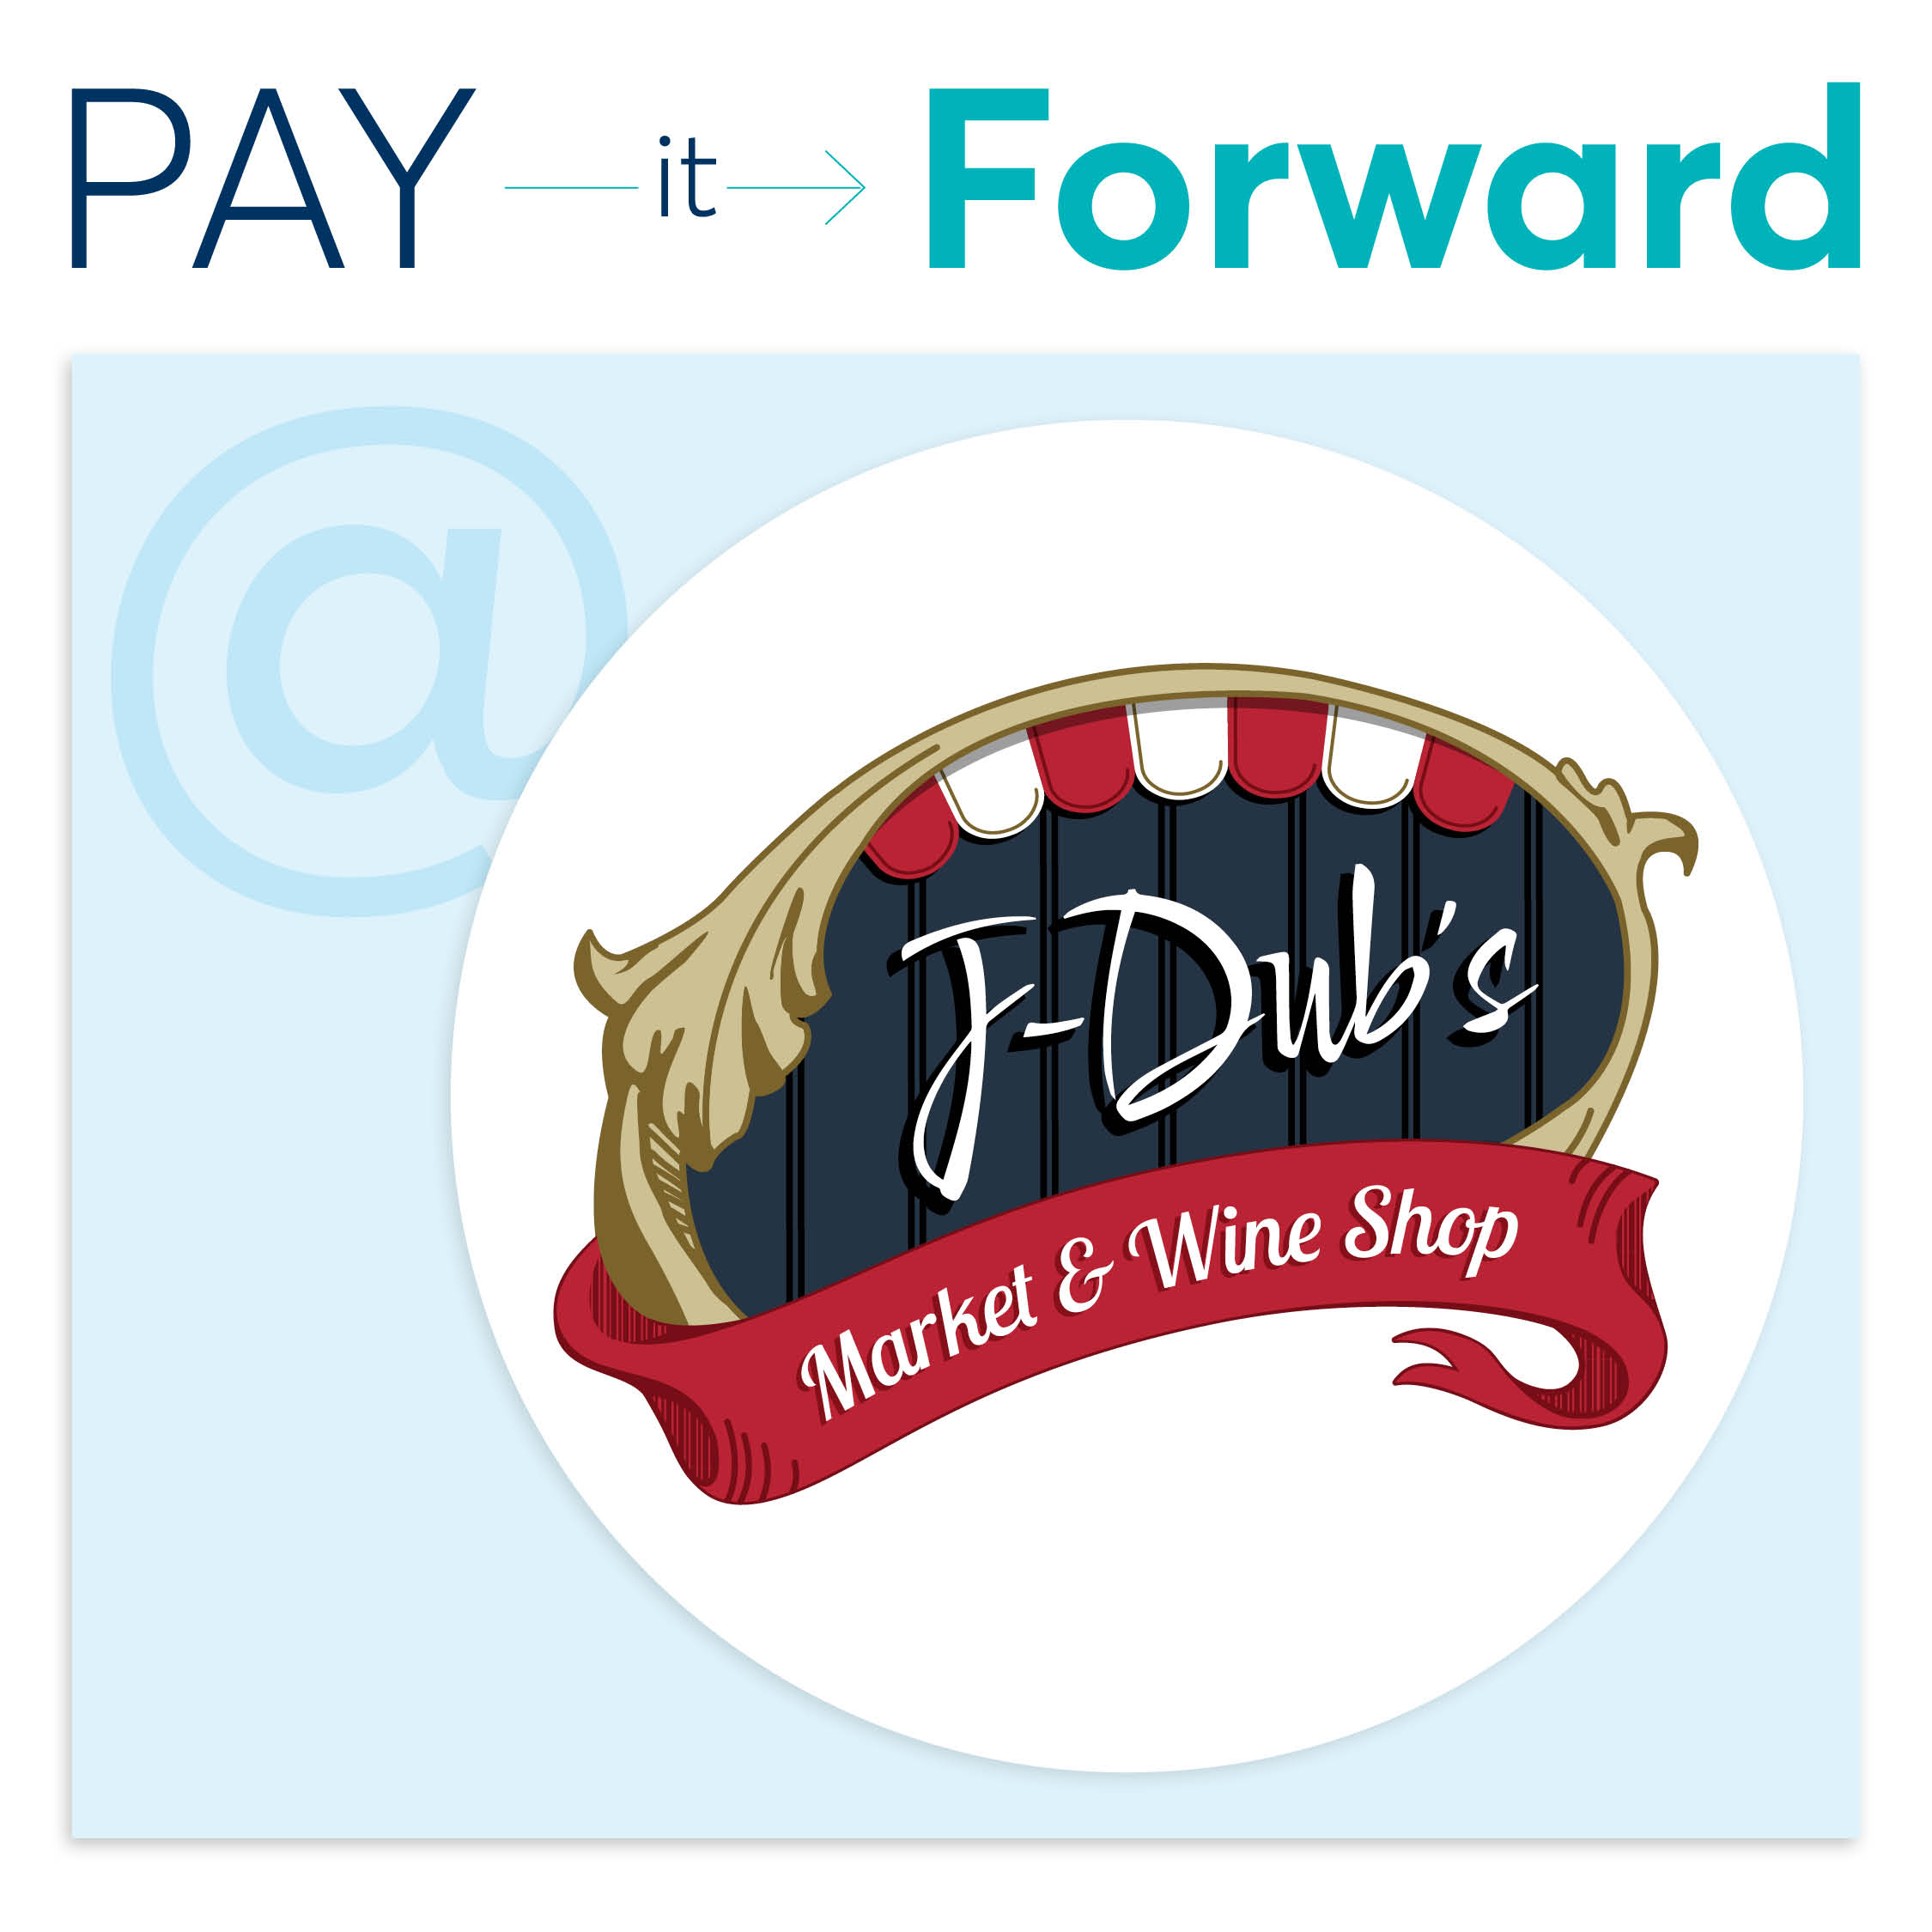 Pay it forward to J-Dubs